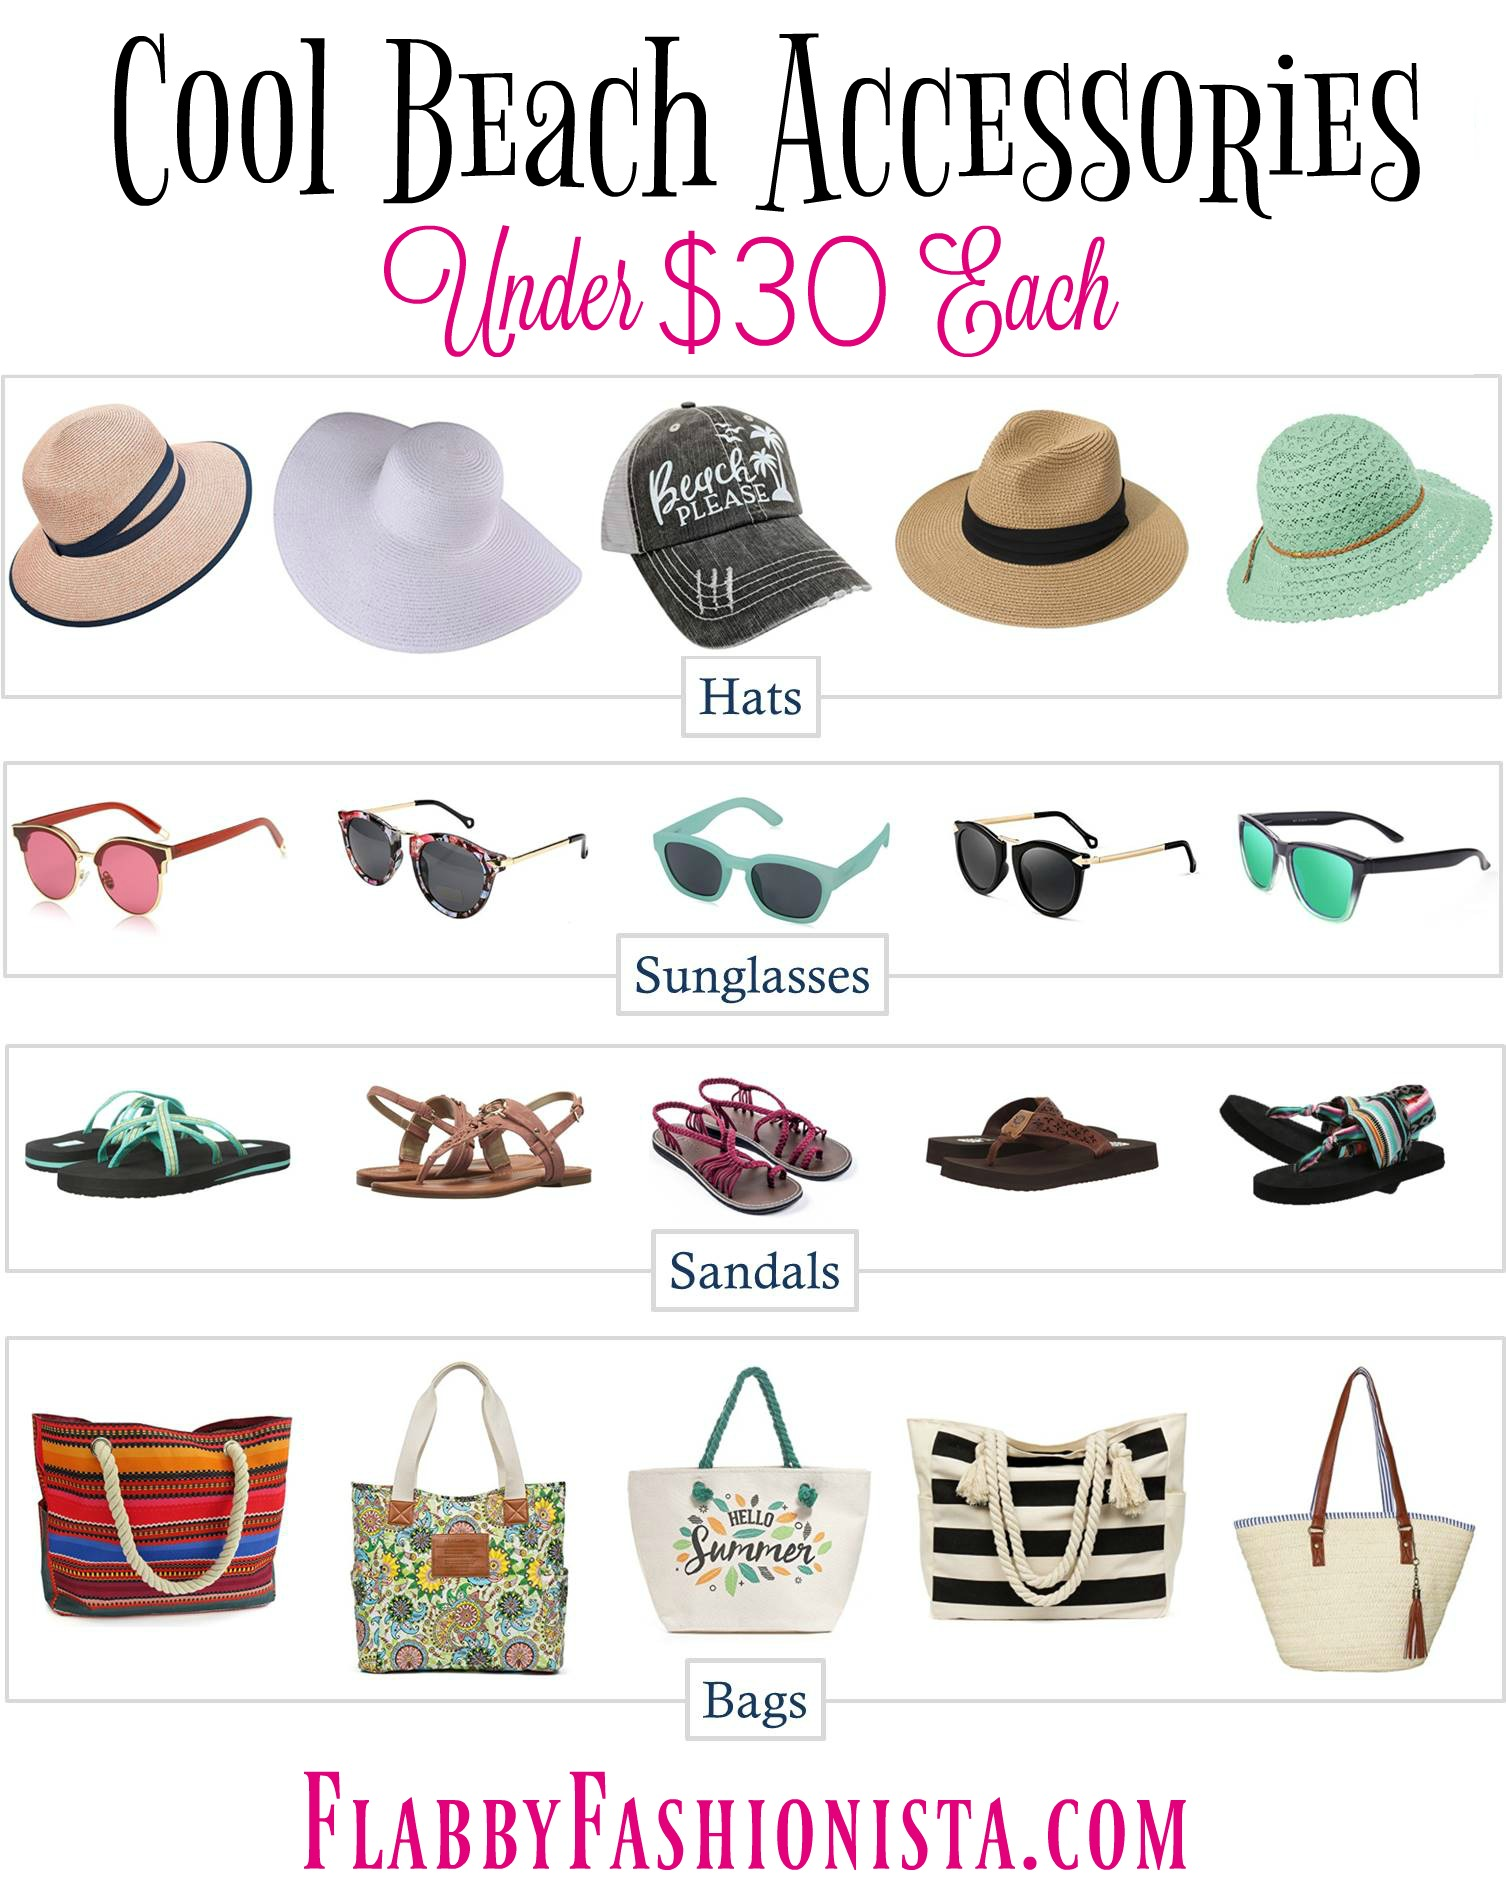 Cool Beach Accessories Under $30 Each